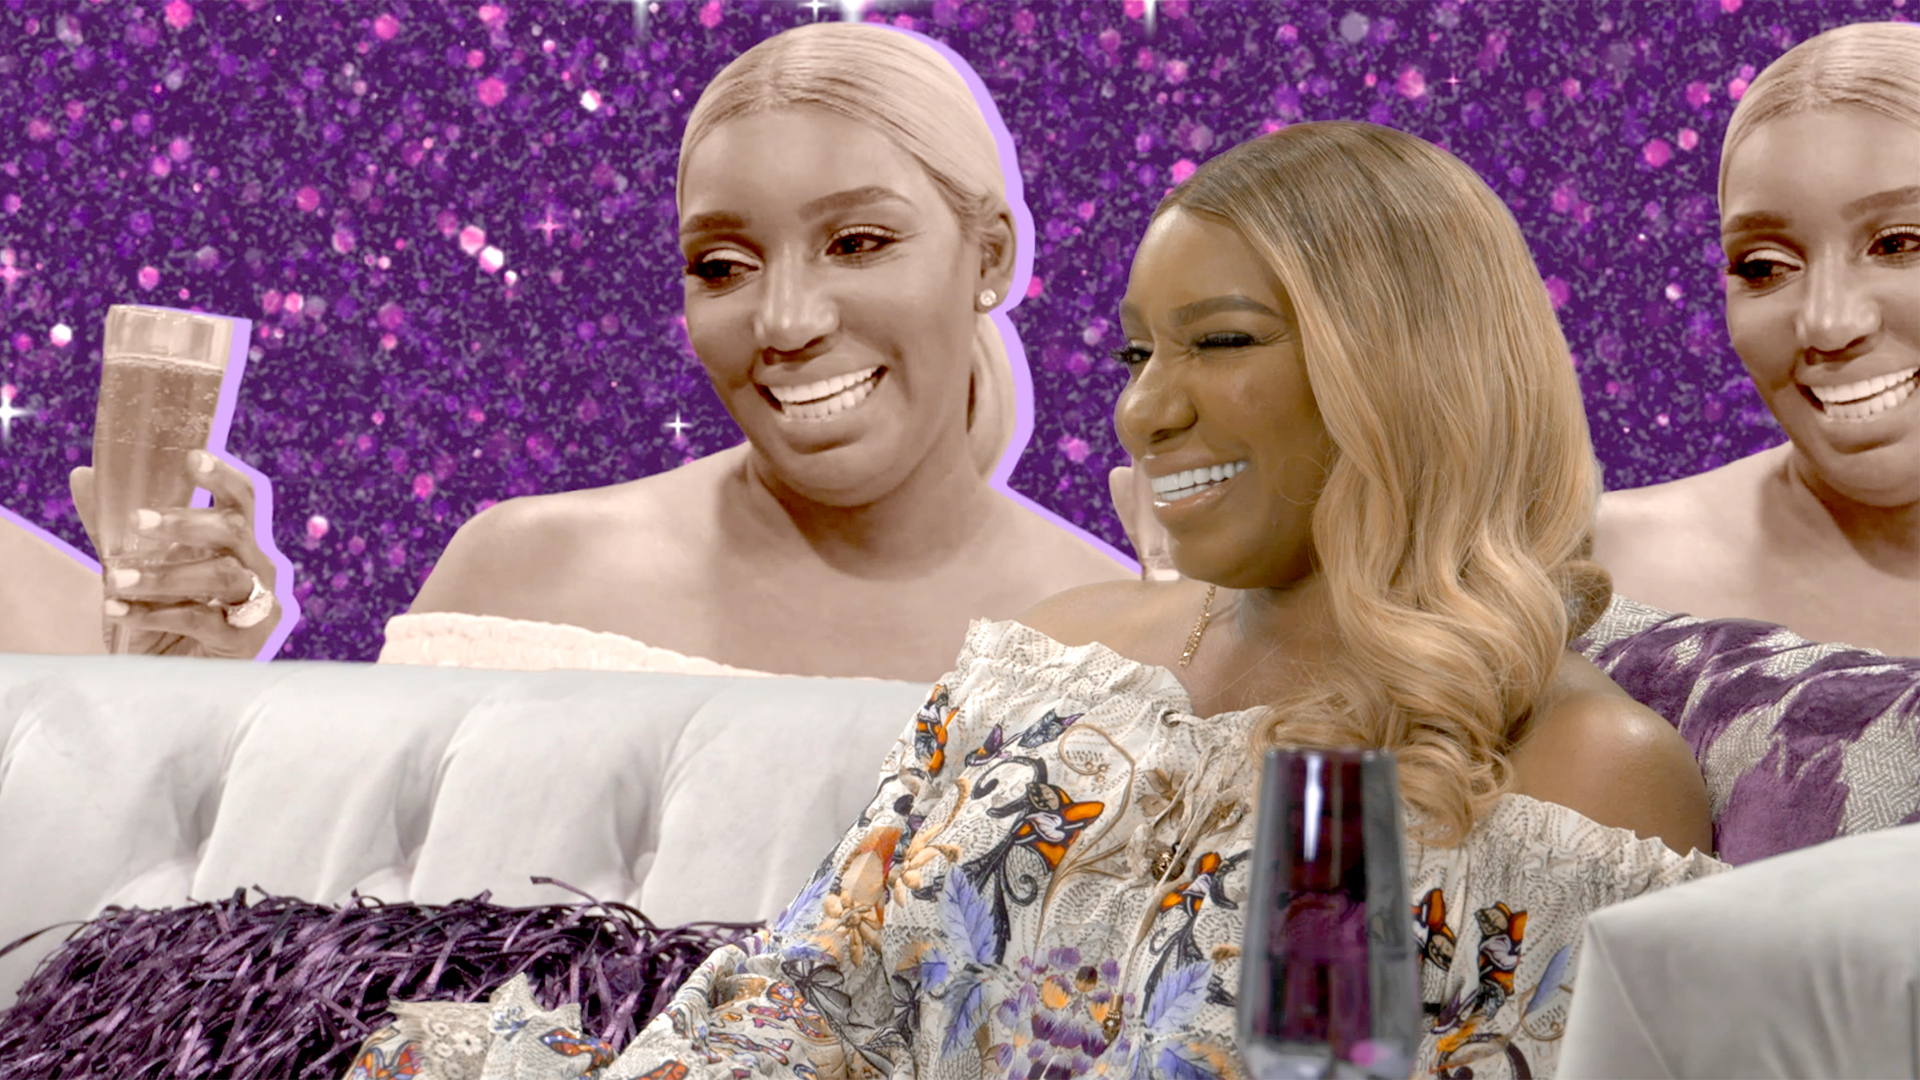 #RHOA After Show: How Did Kim Zolciak-Biermann Meet NeNe Leakes?